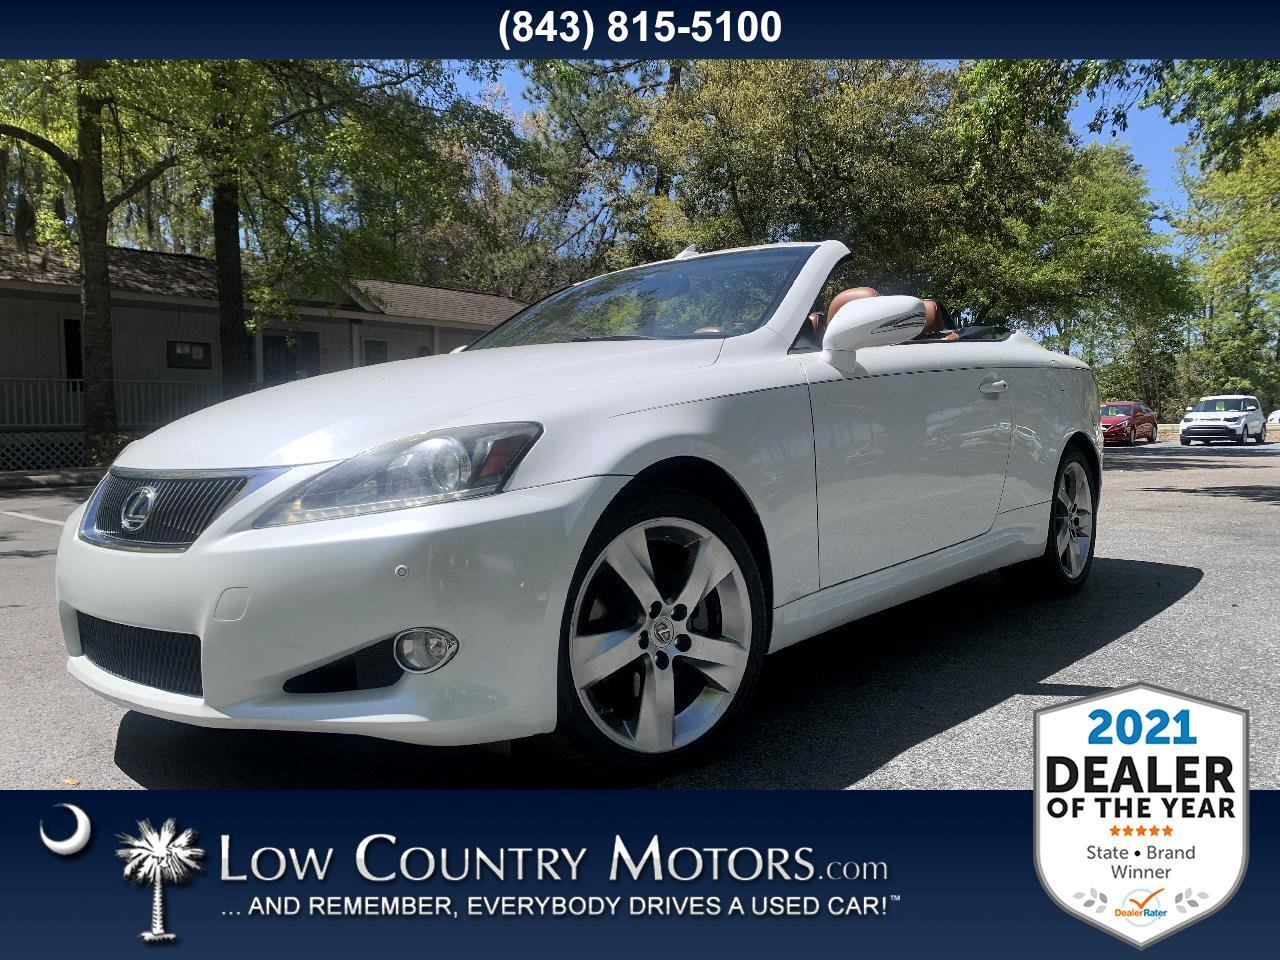 Lexus IS 250C 2dr Conv 2011